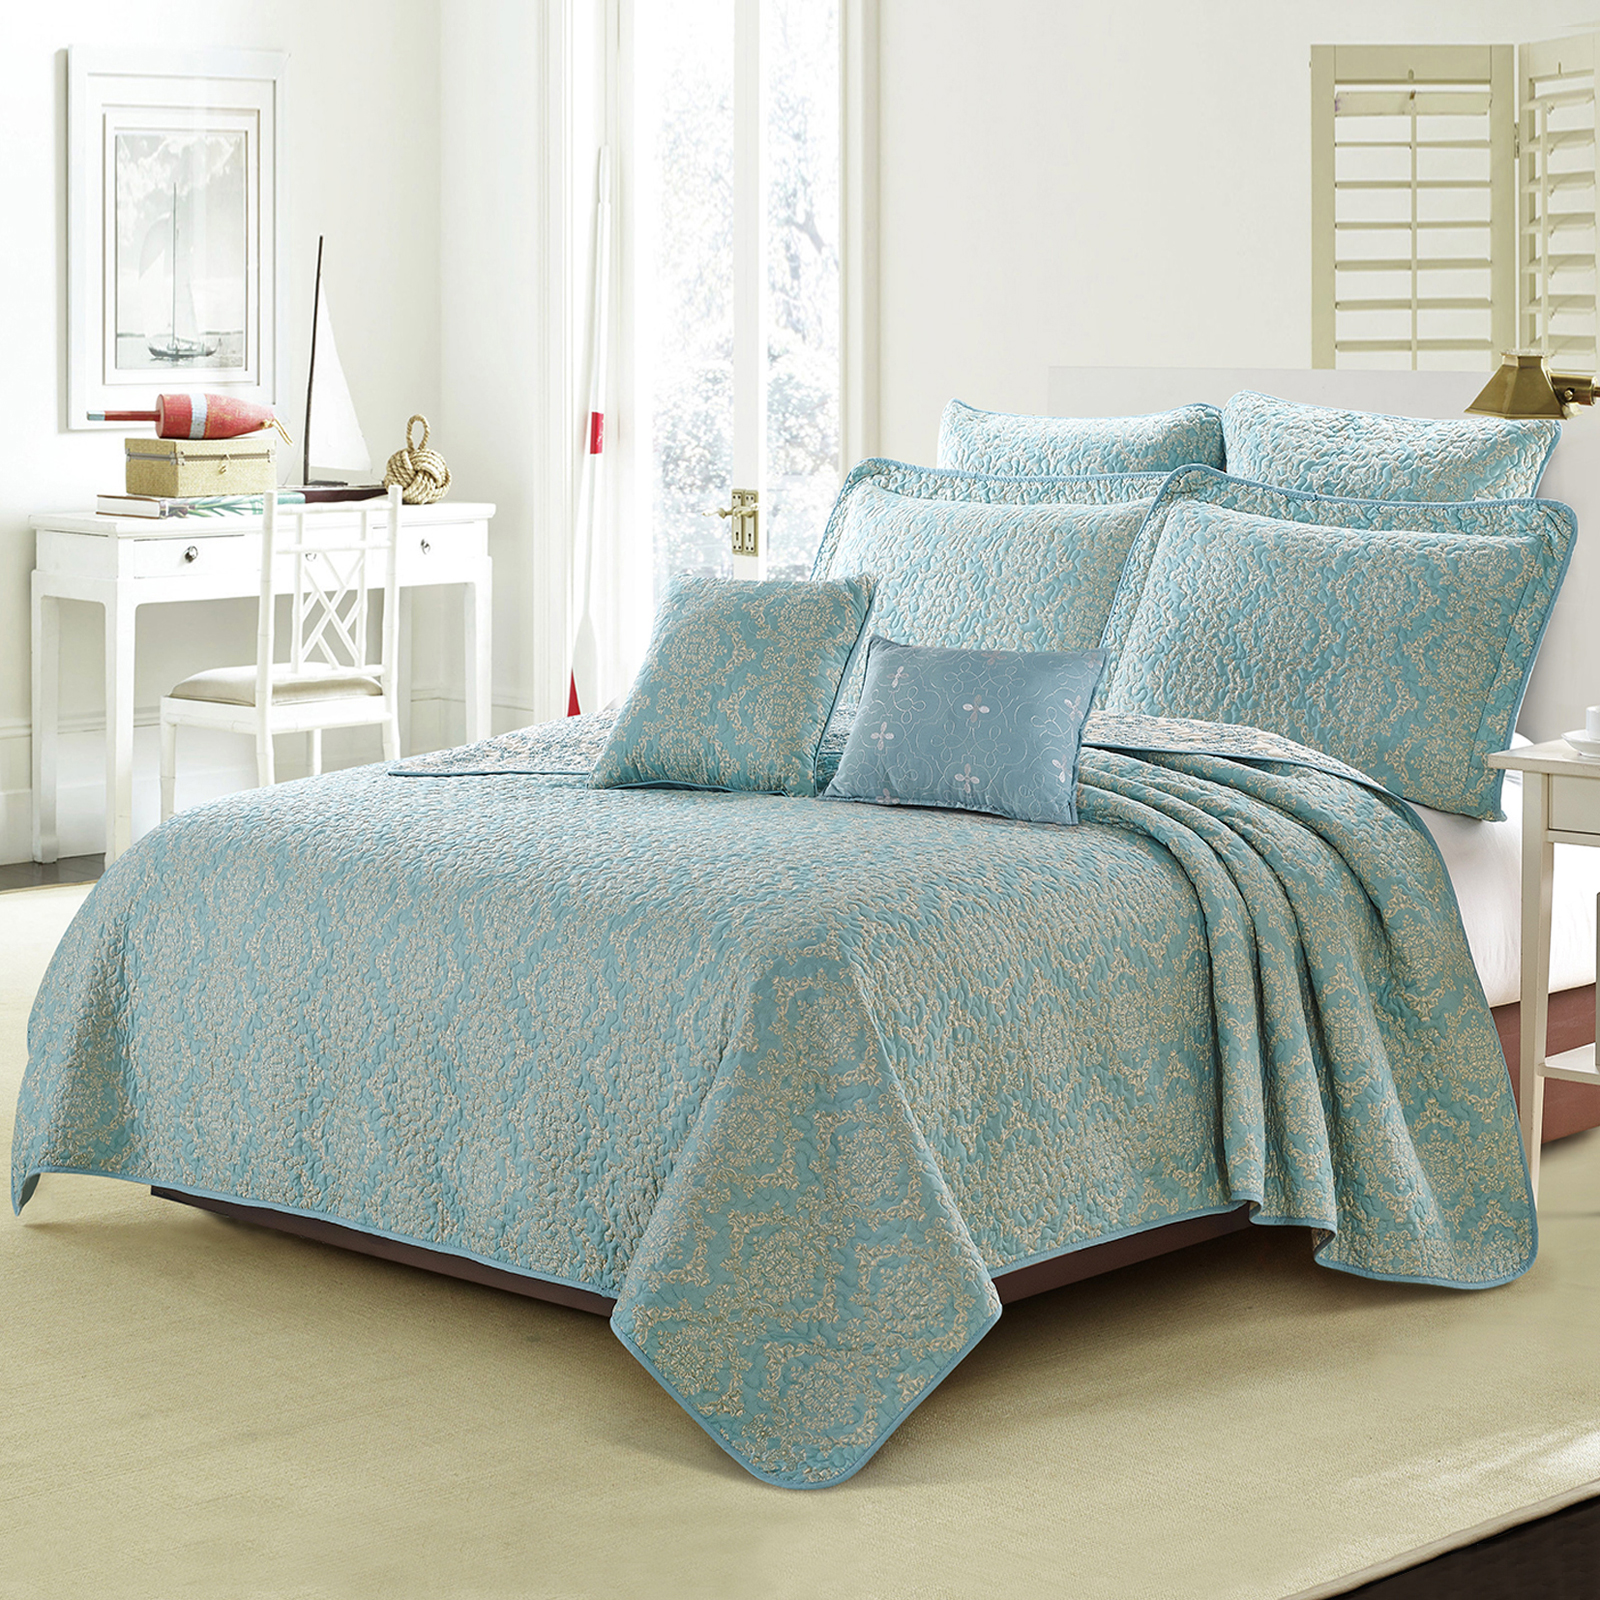 Home Soft Things Serenta Printed Microfiber 7 Piece Mystic Bedspread Quilts Set